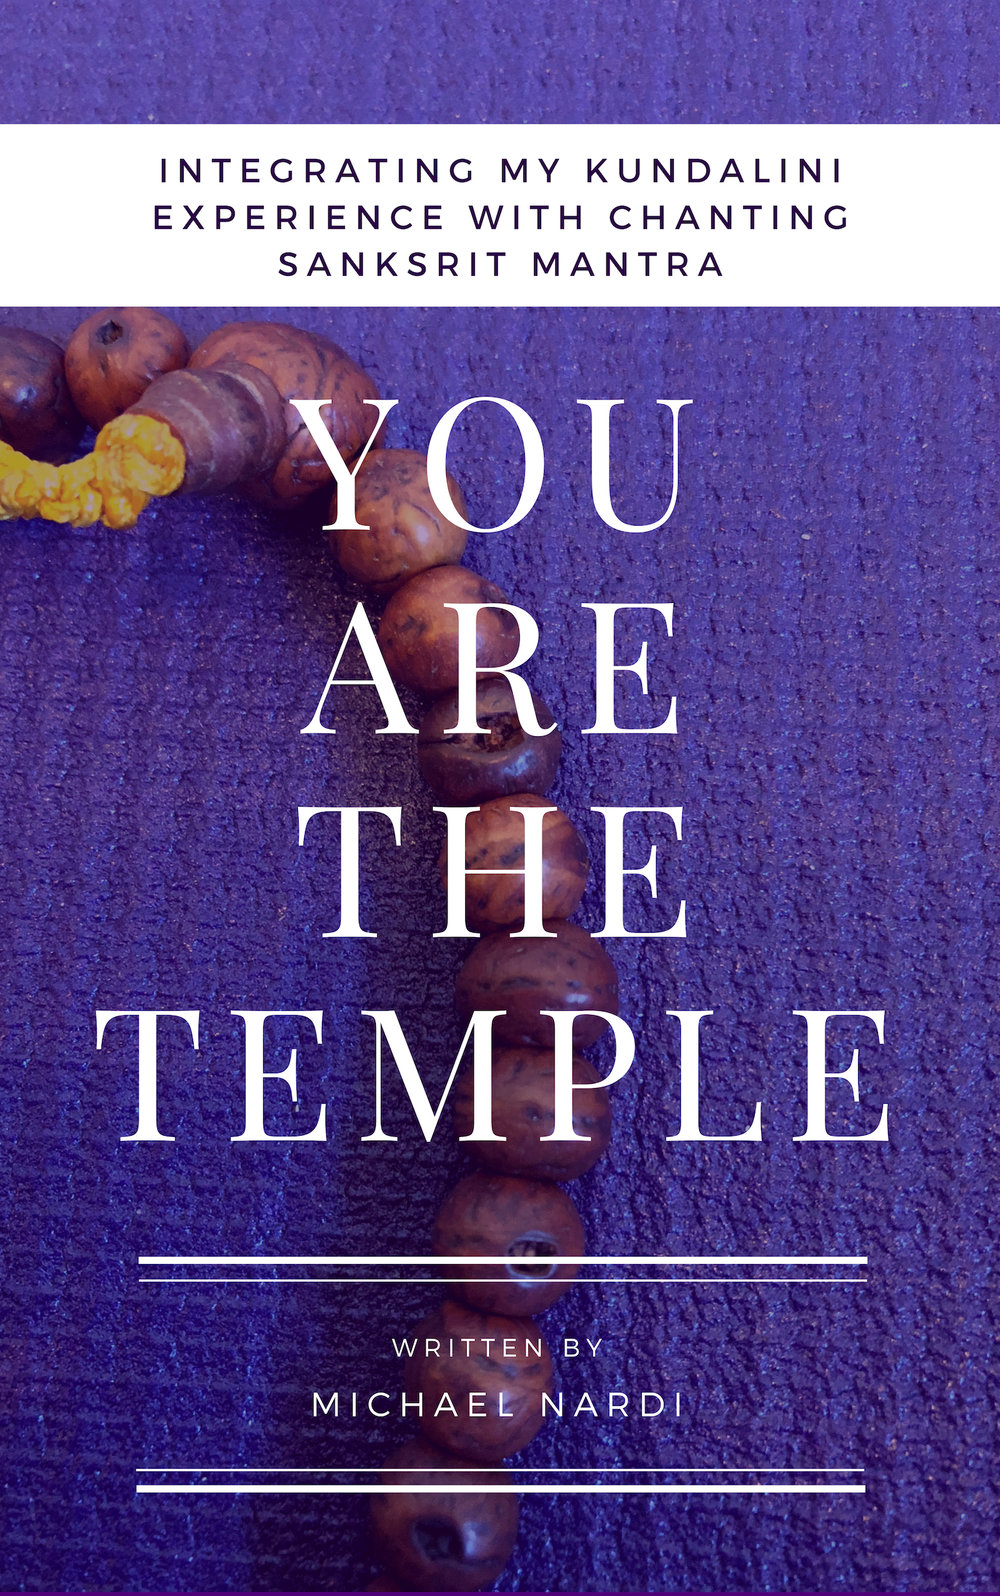 You are the Temple-Integrating my kundalini experience with chanting sanskrit mantra.jpg